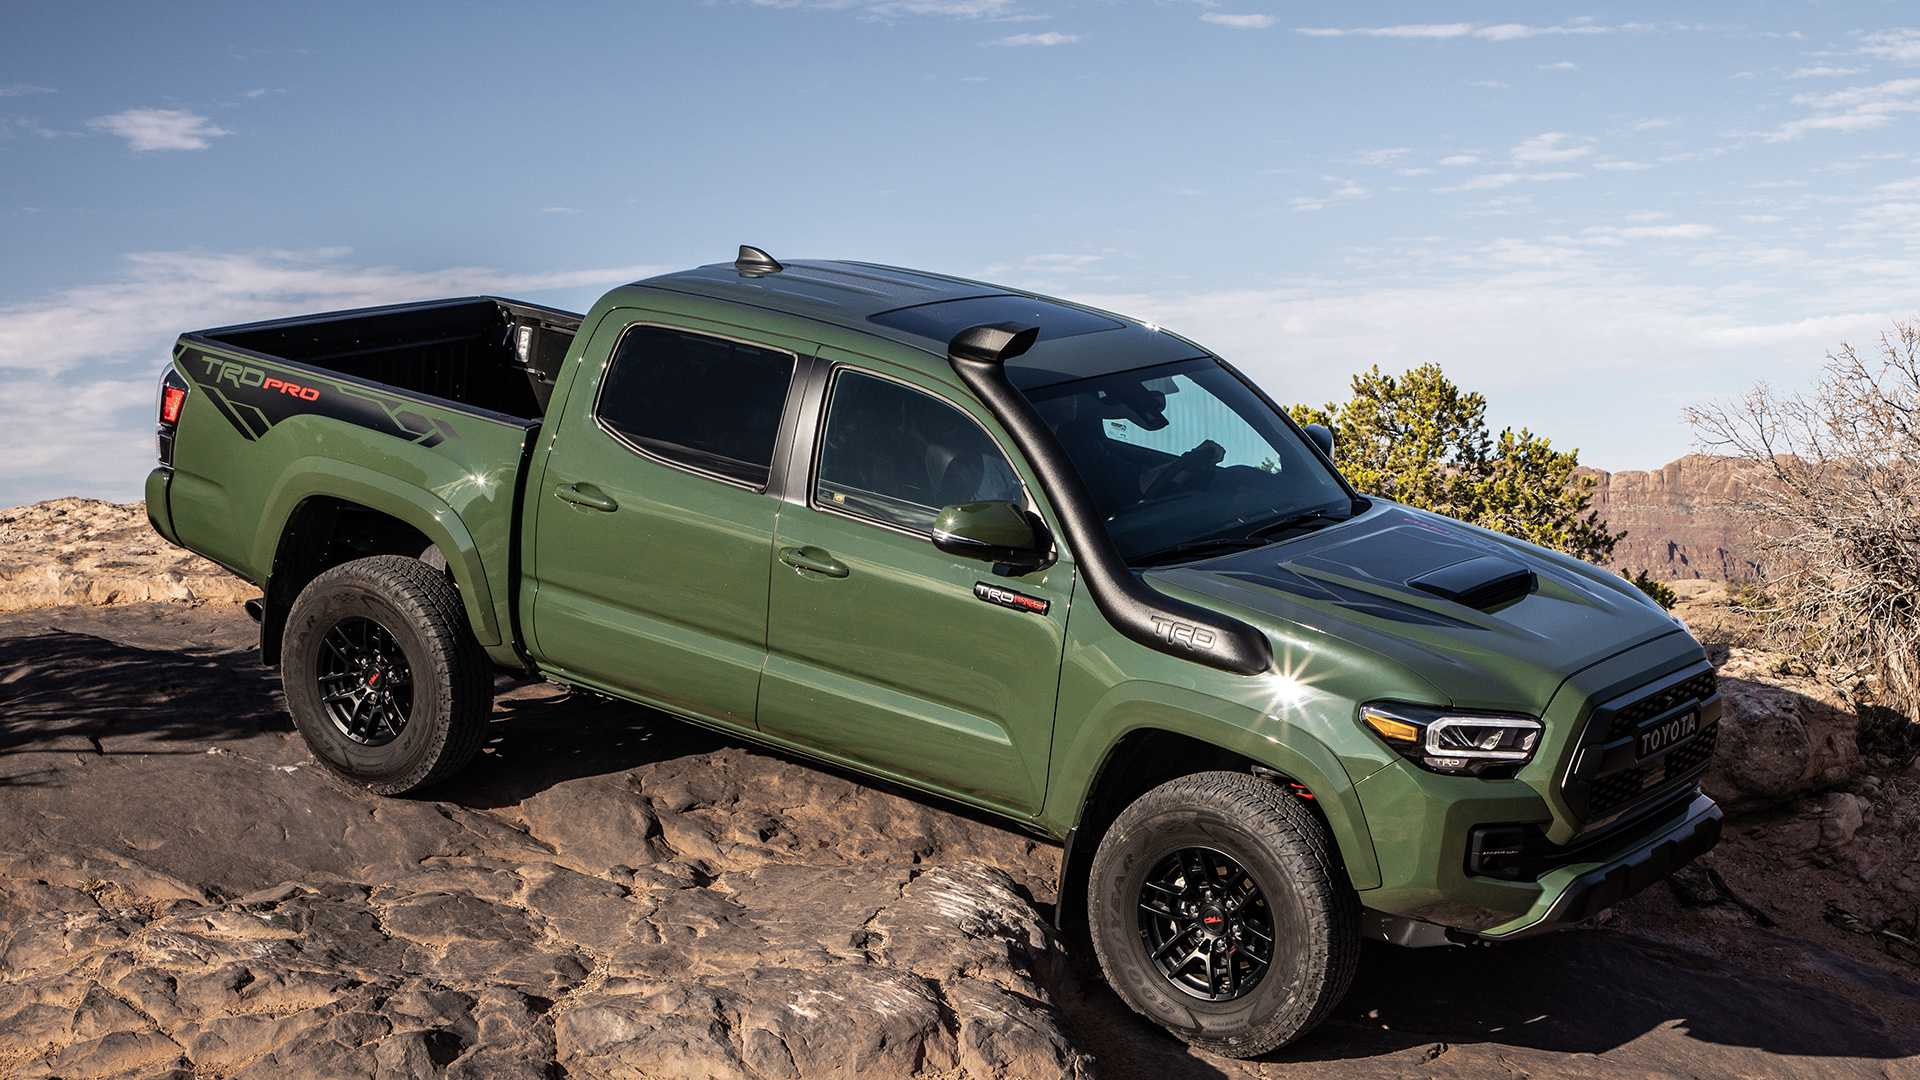 2020 Toyota Tacoma Trd Pro Sees 1 000 Price Hike Over 2019 Model